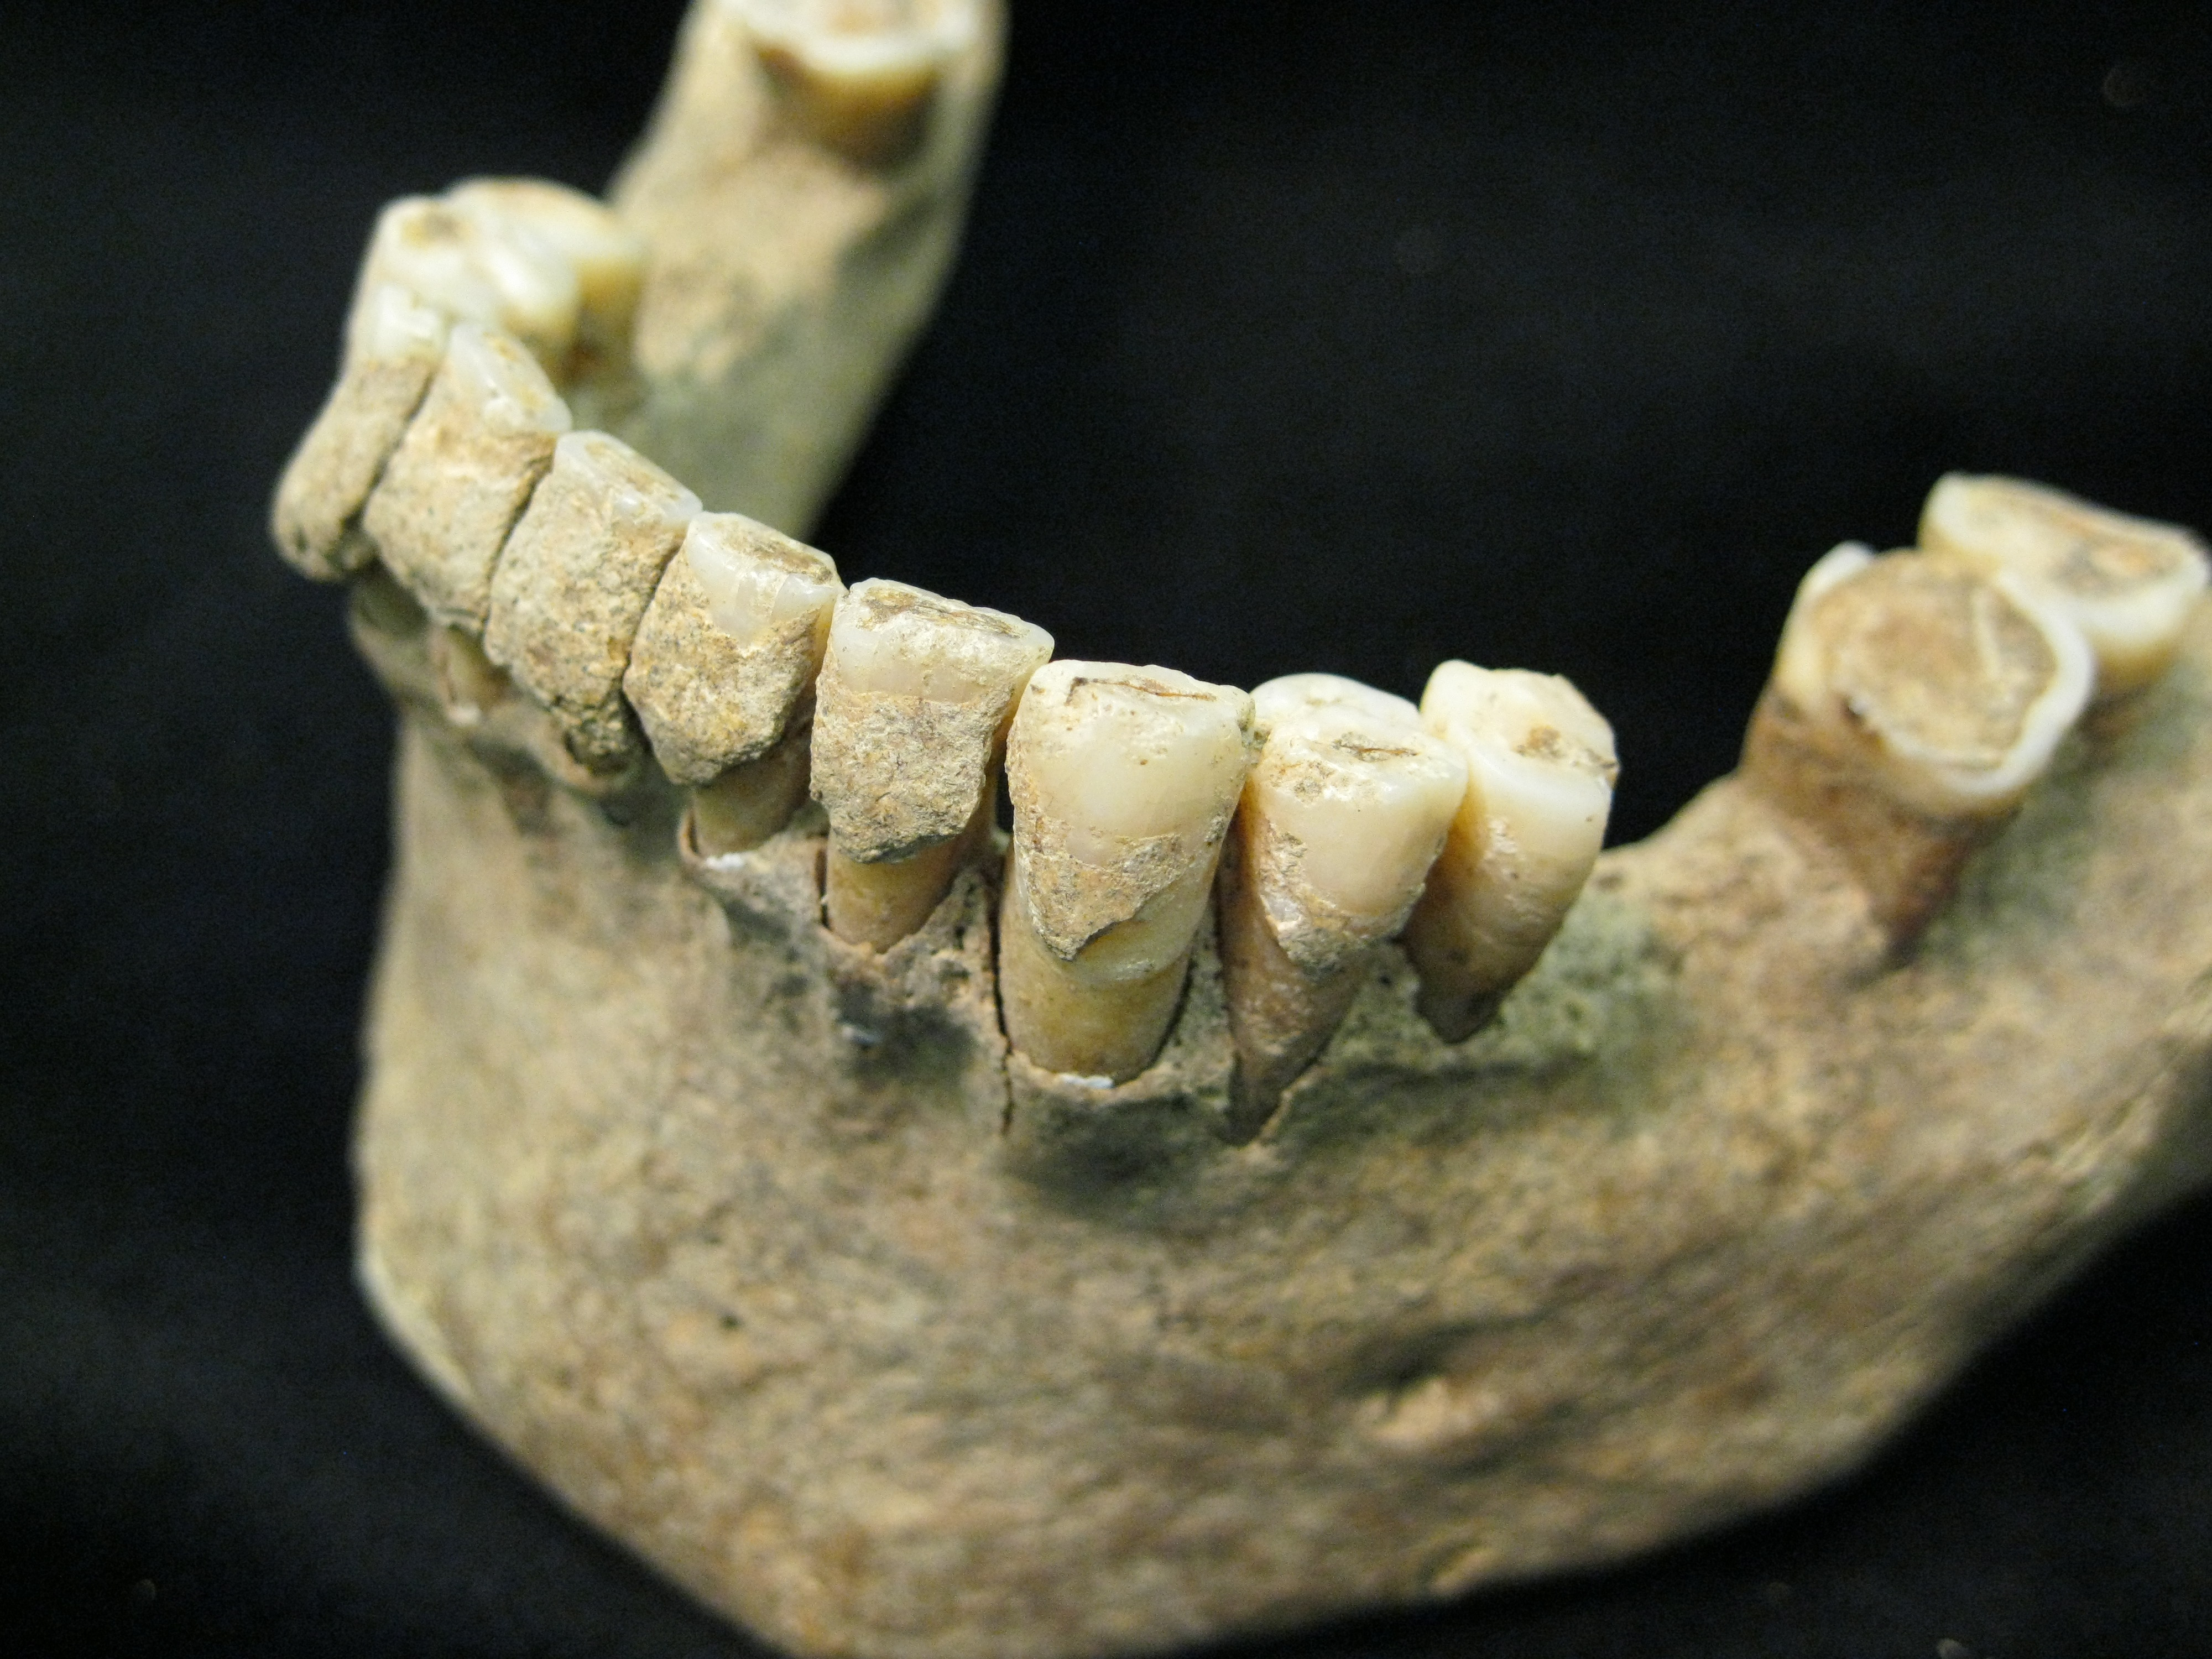 Image: Fossilised dental plaque (calculus) on the teeth of a middle-aged man from the Medieval site of Dalheim, Germany, ca. AD 1100. Photo credit: Christina Warinner.